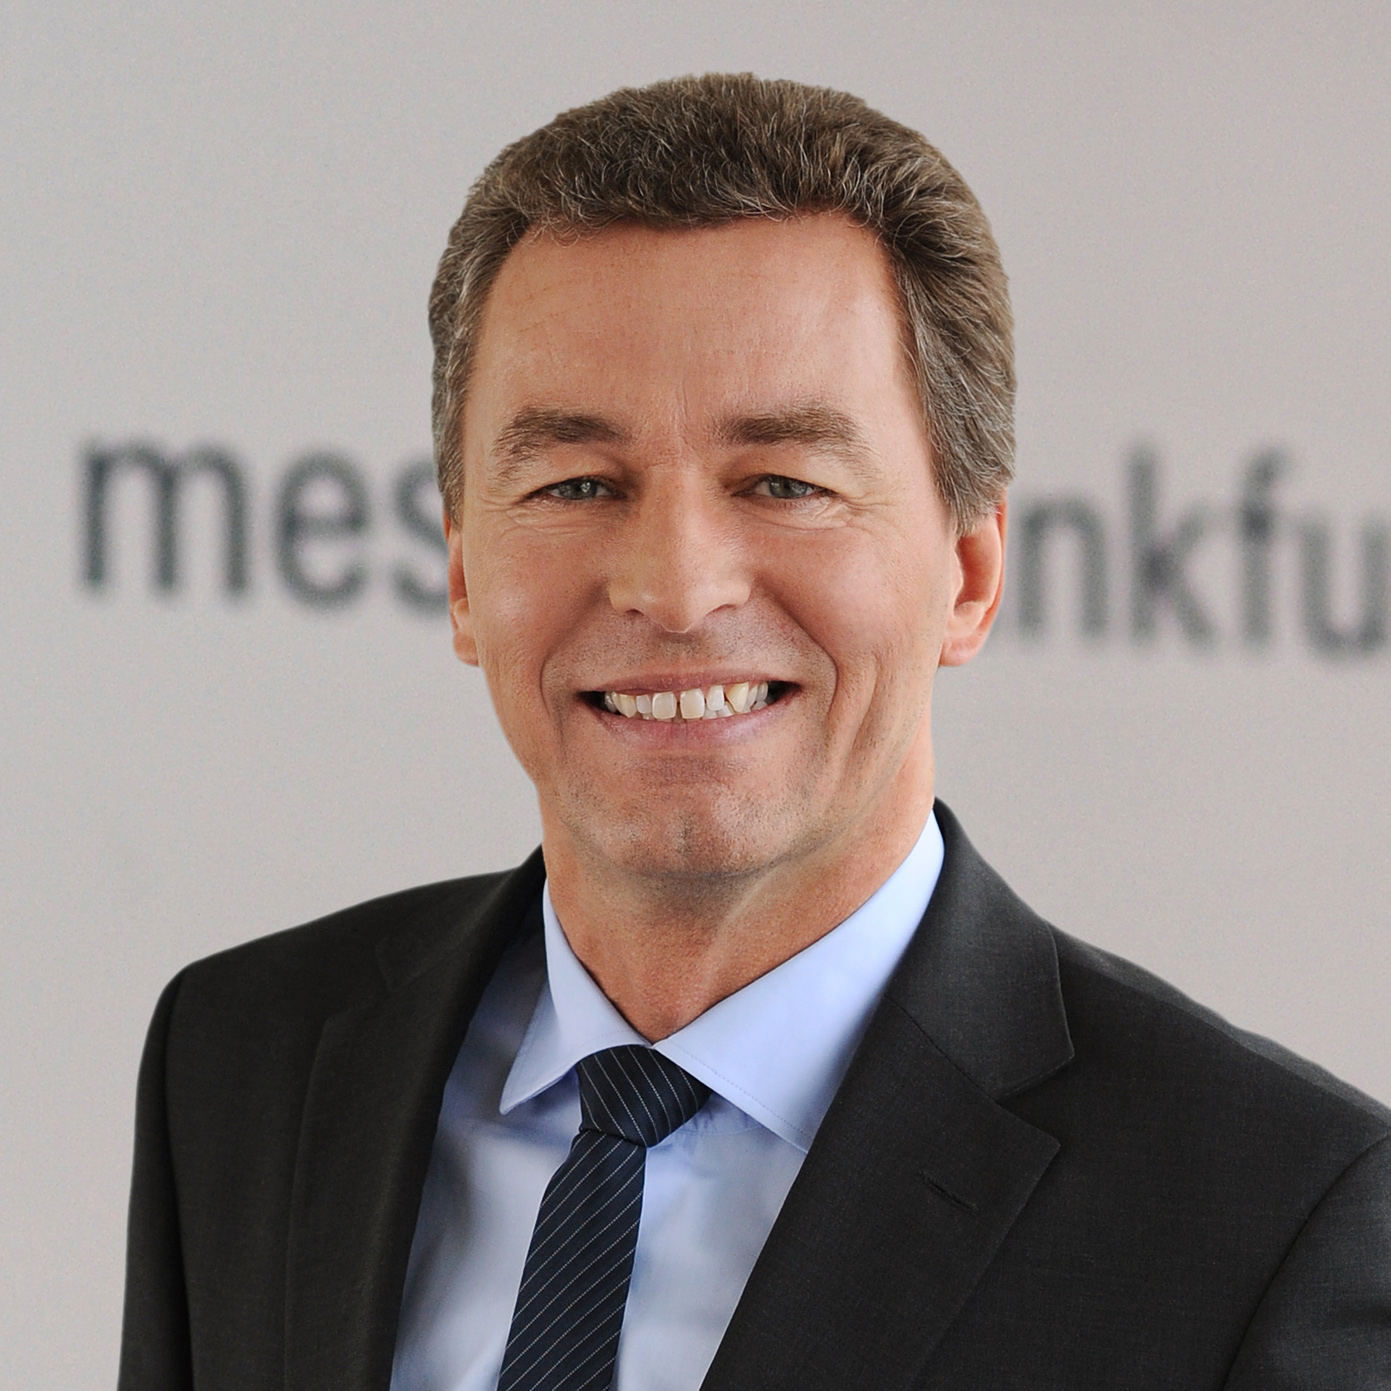 Detlef Braun Executive Board Member Messe Frankfurt